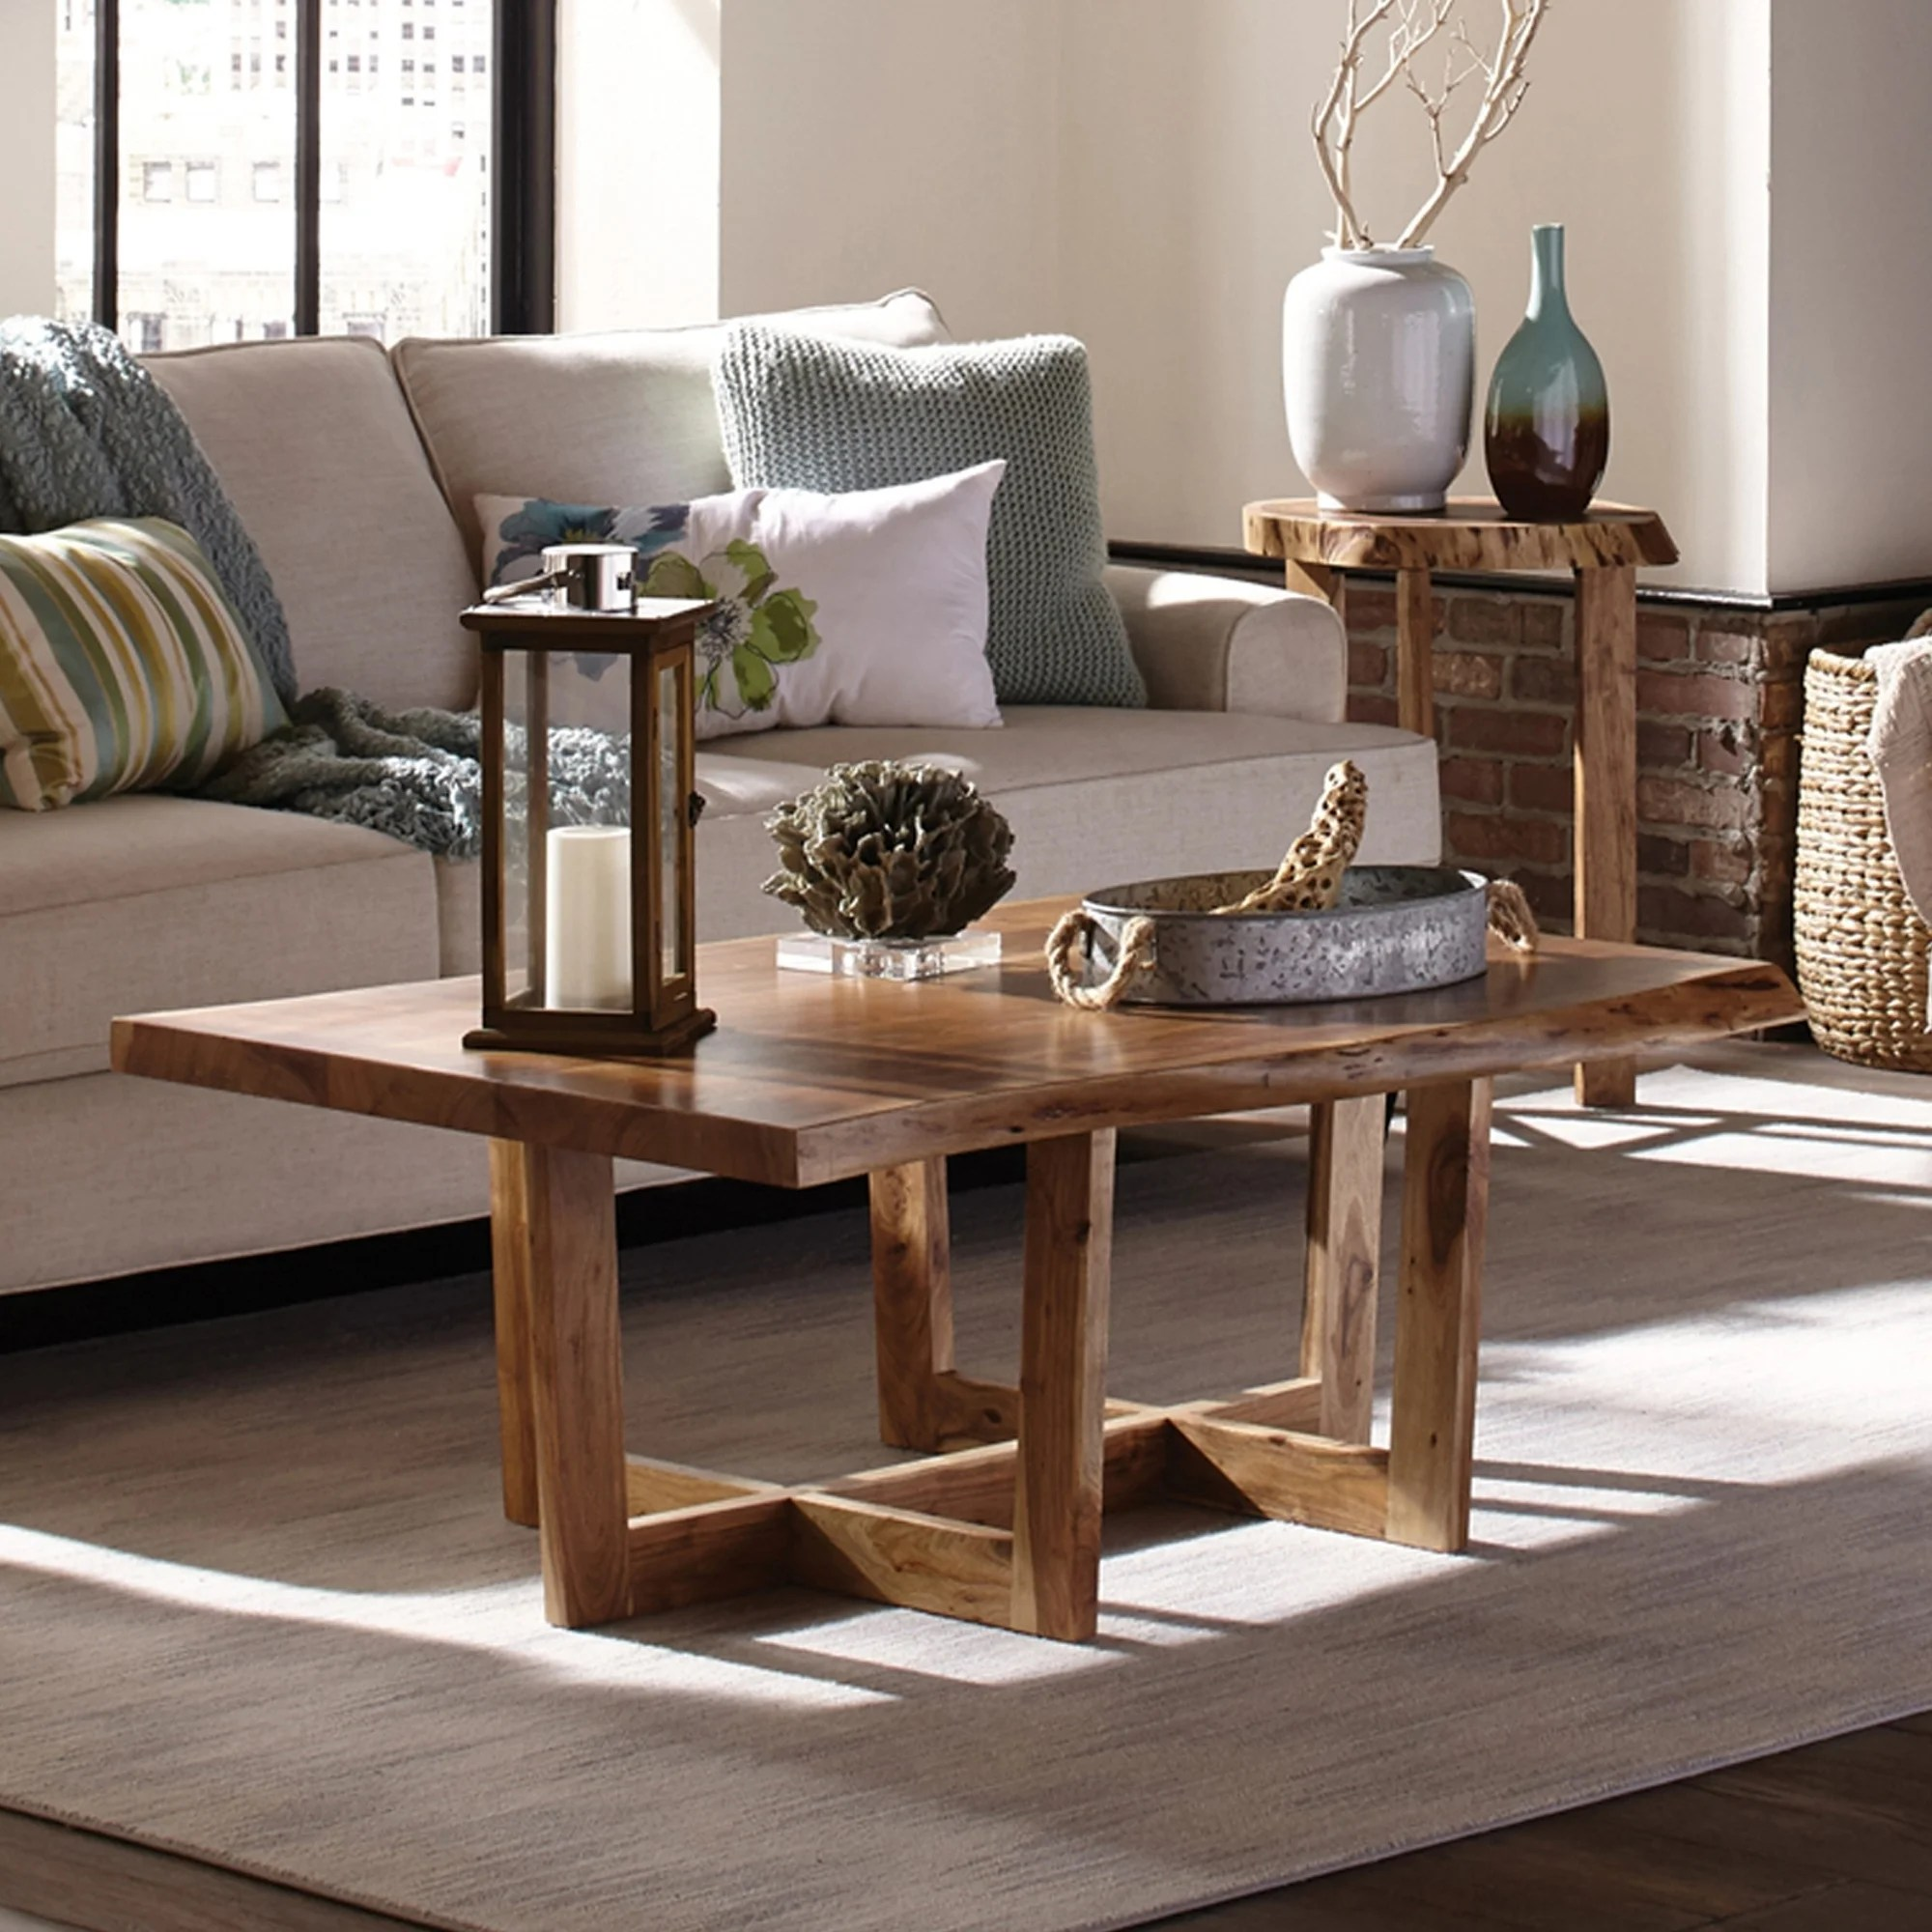 Urban Sofa Live Edge Berkshire Natural Live Edge Large Coffee Table Natural